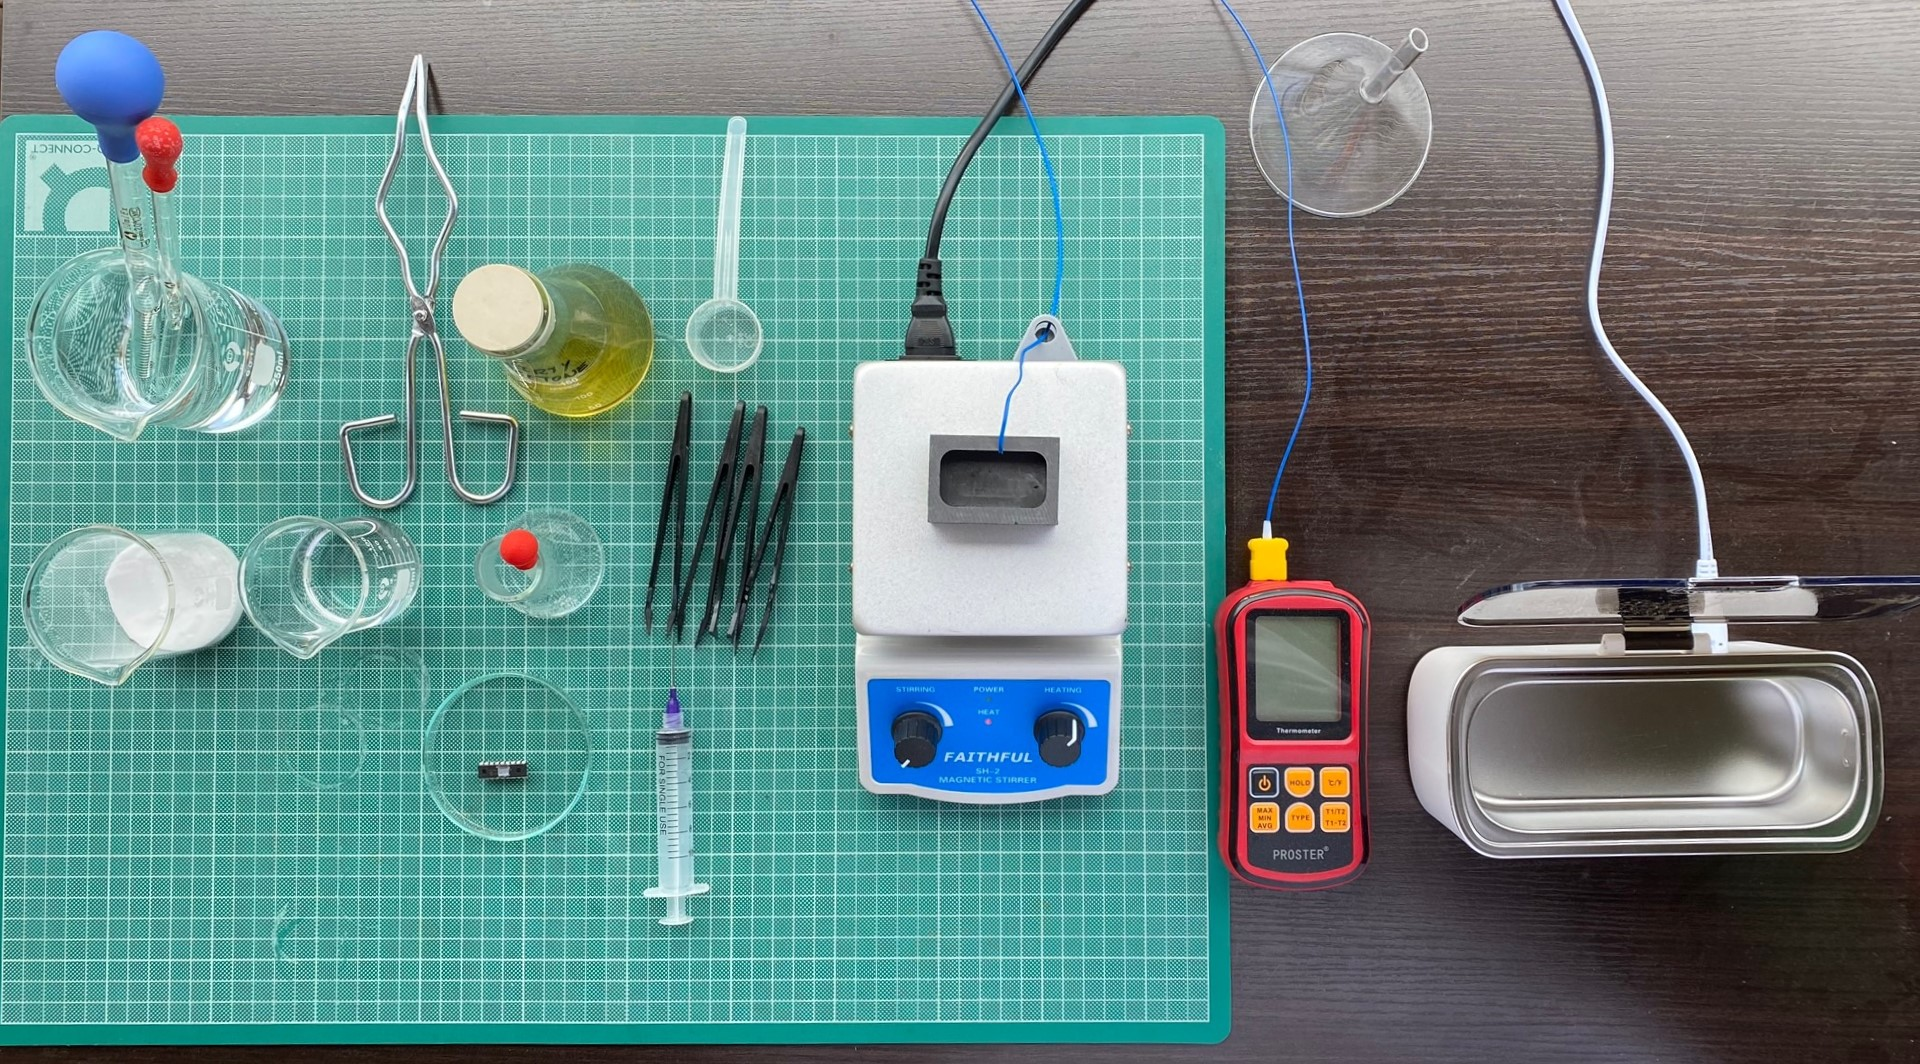 All the equipment used for the most successful method